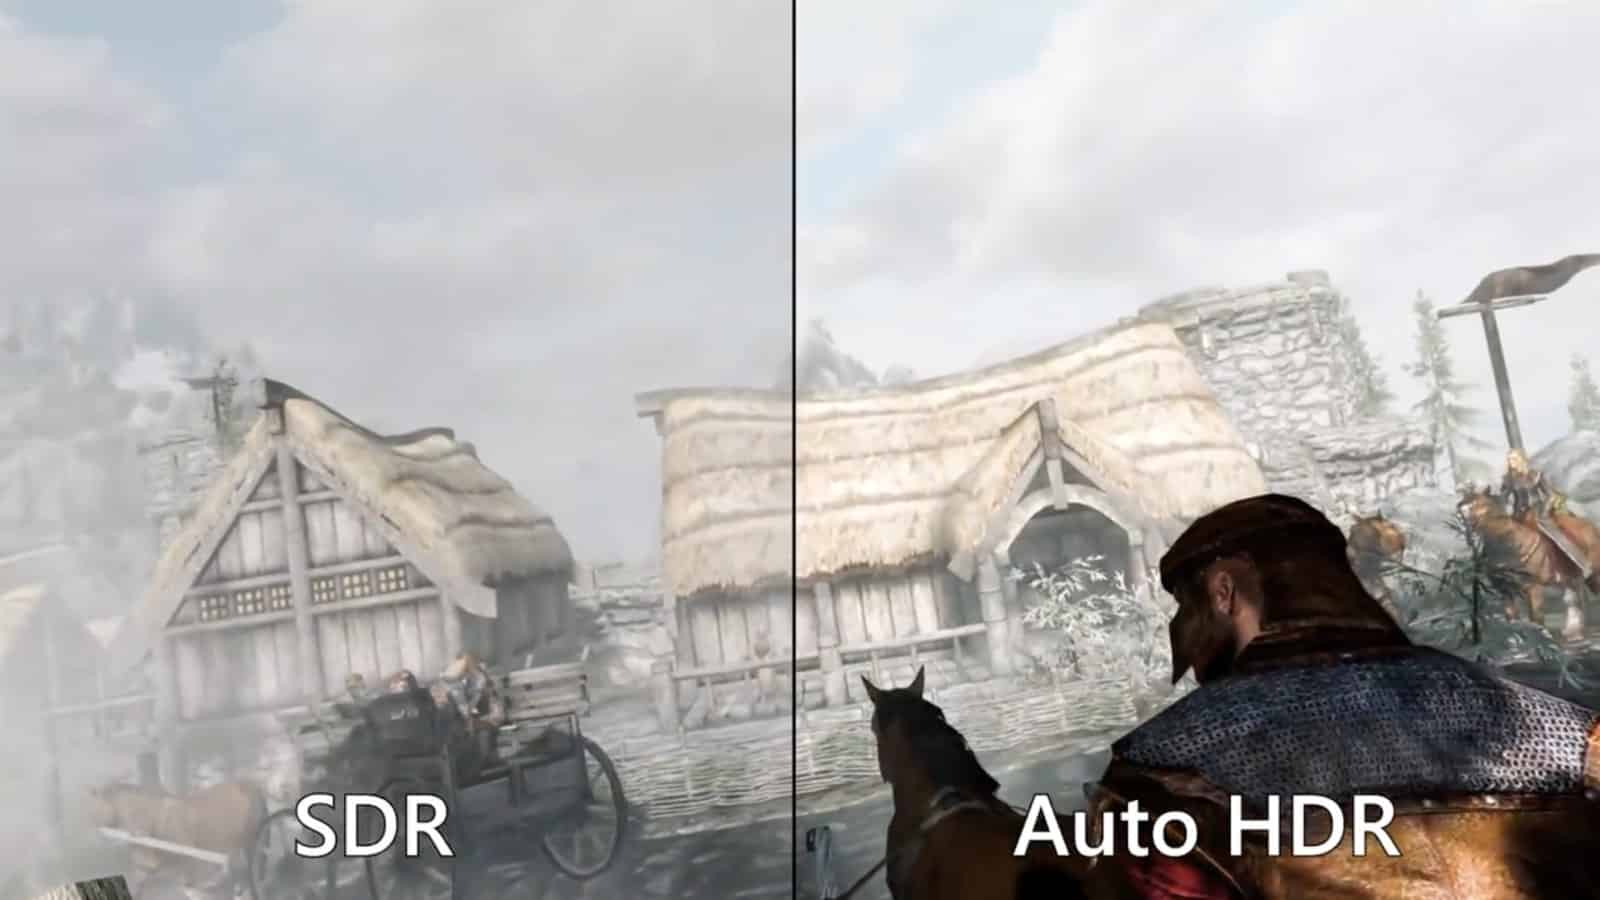 skyrim showing auto hdr in windows 11